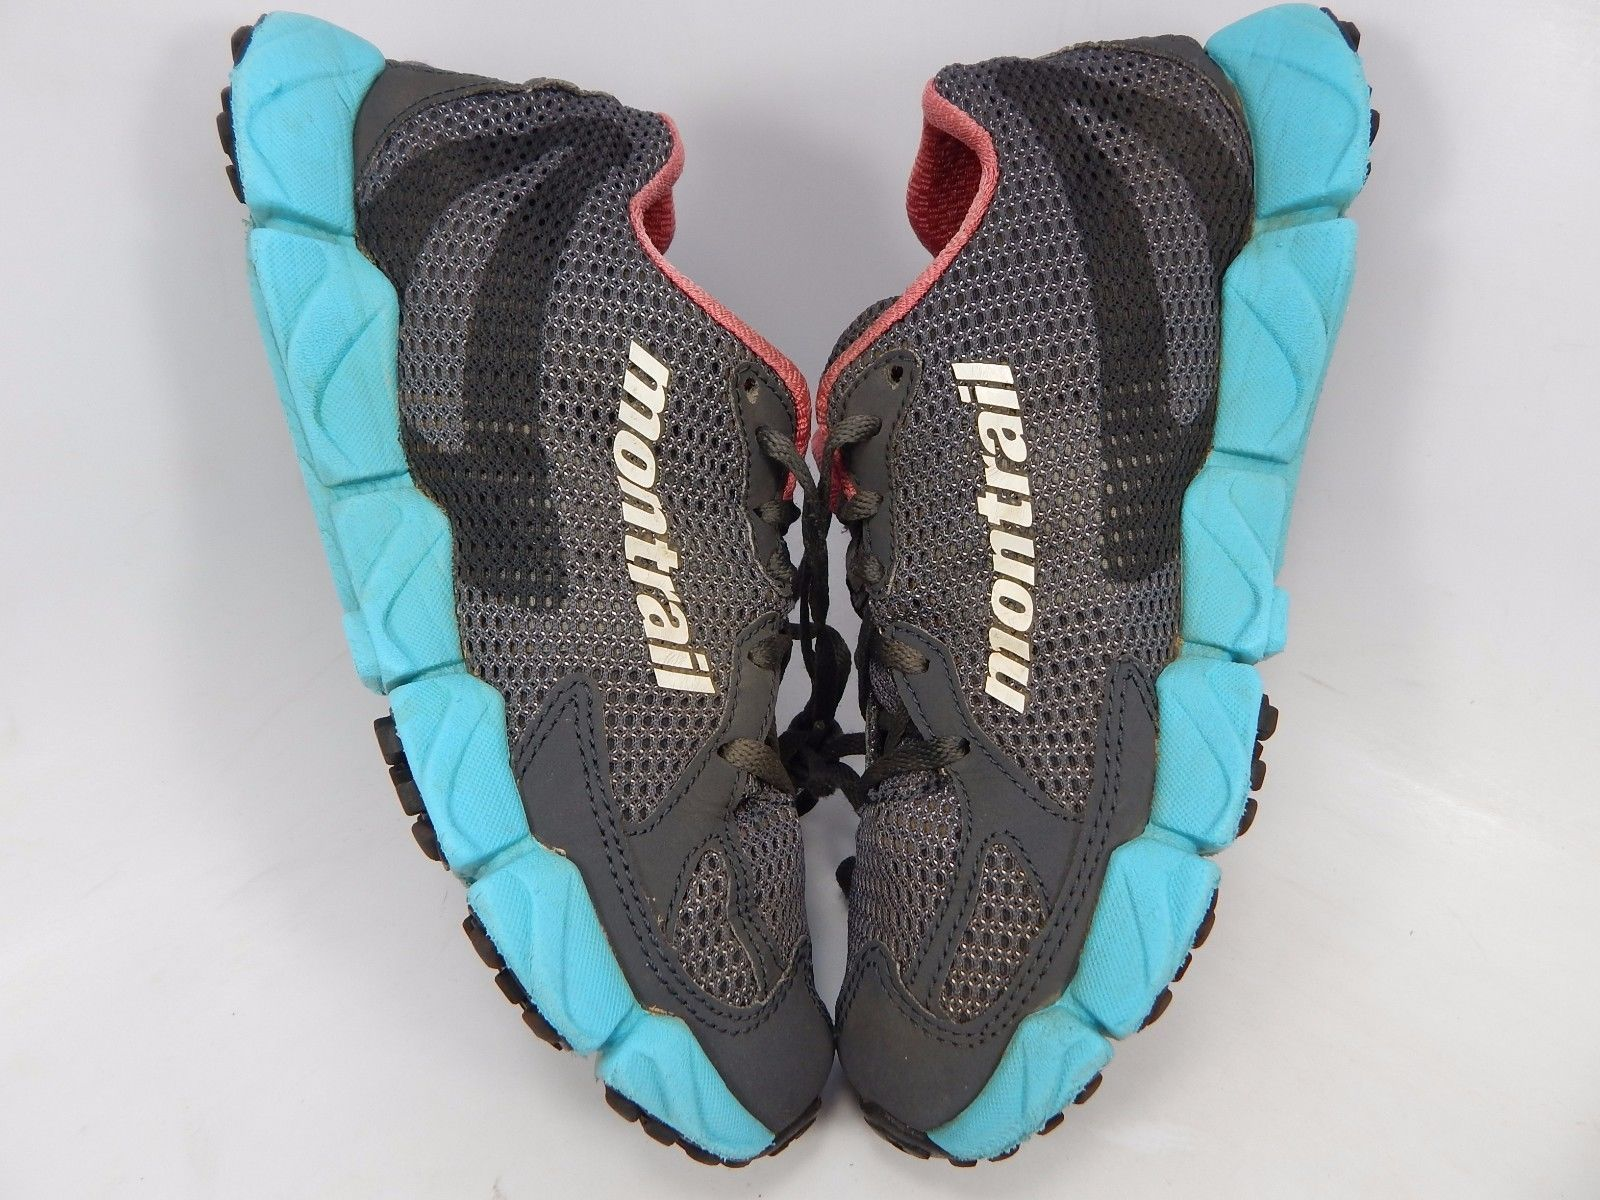 Montrail FluidFlex Women's Trail Running Shoes Size US 6.5 M (B) EU 37.5 Gray